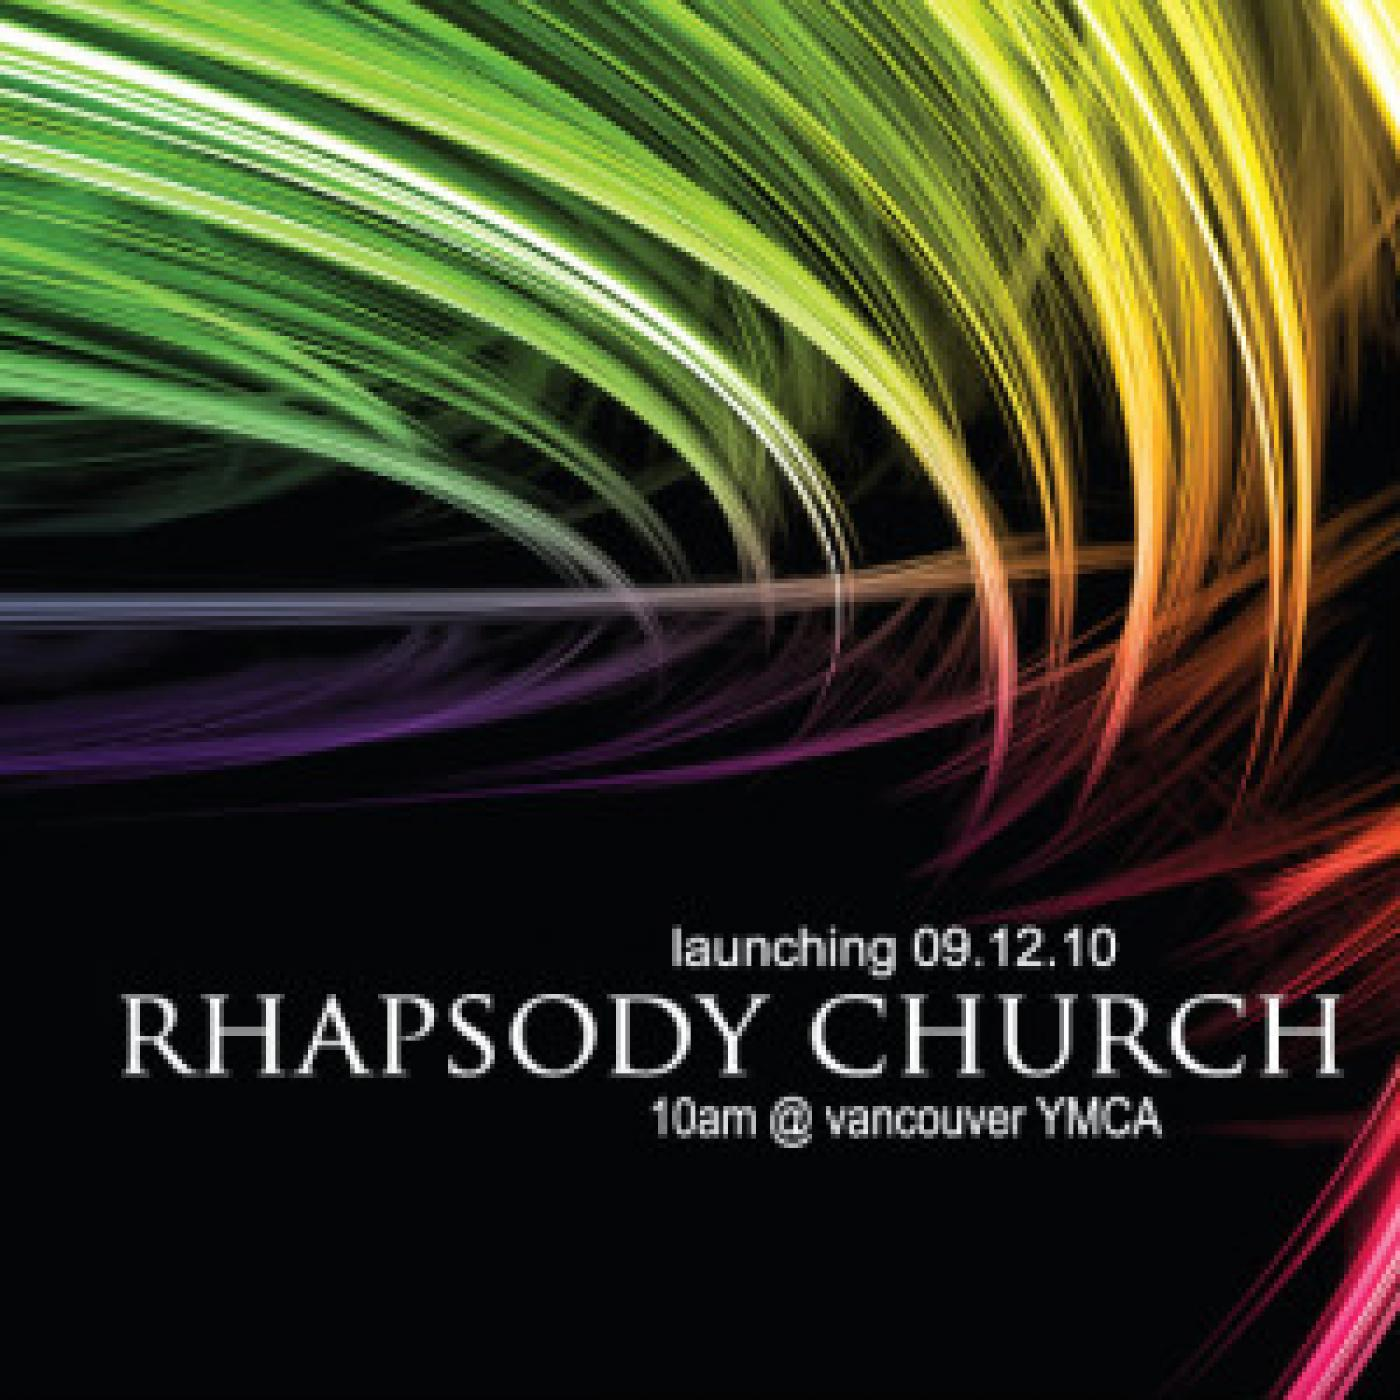 Rhapsody Church